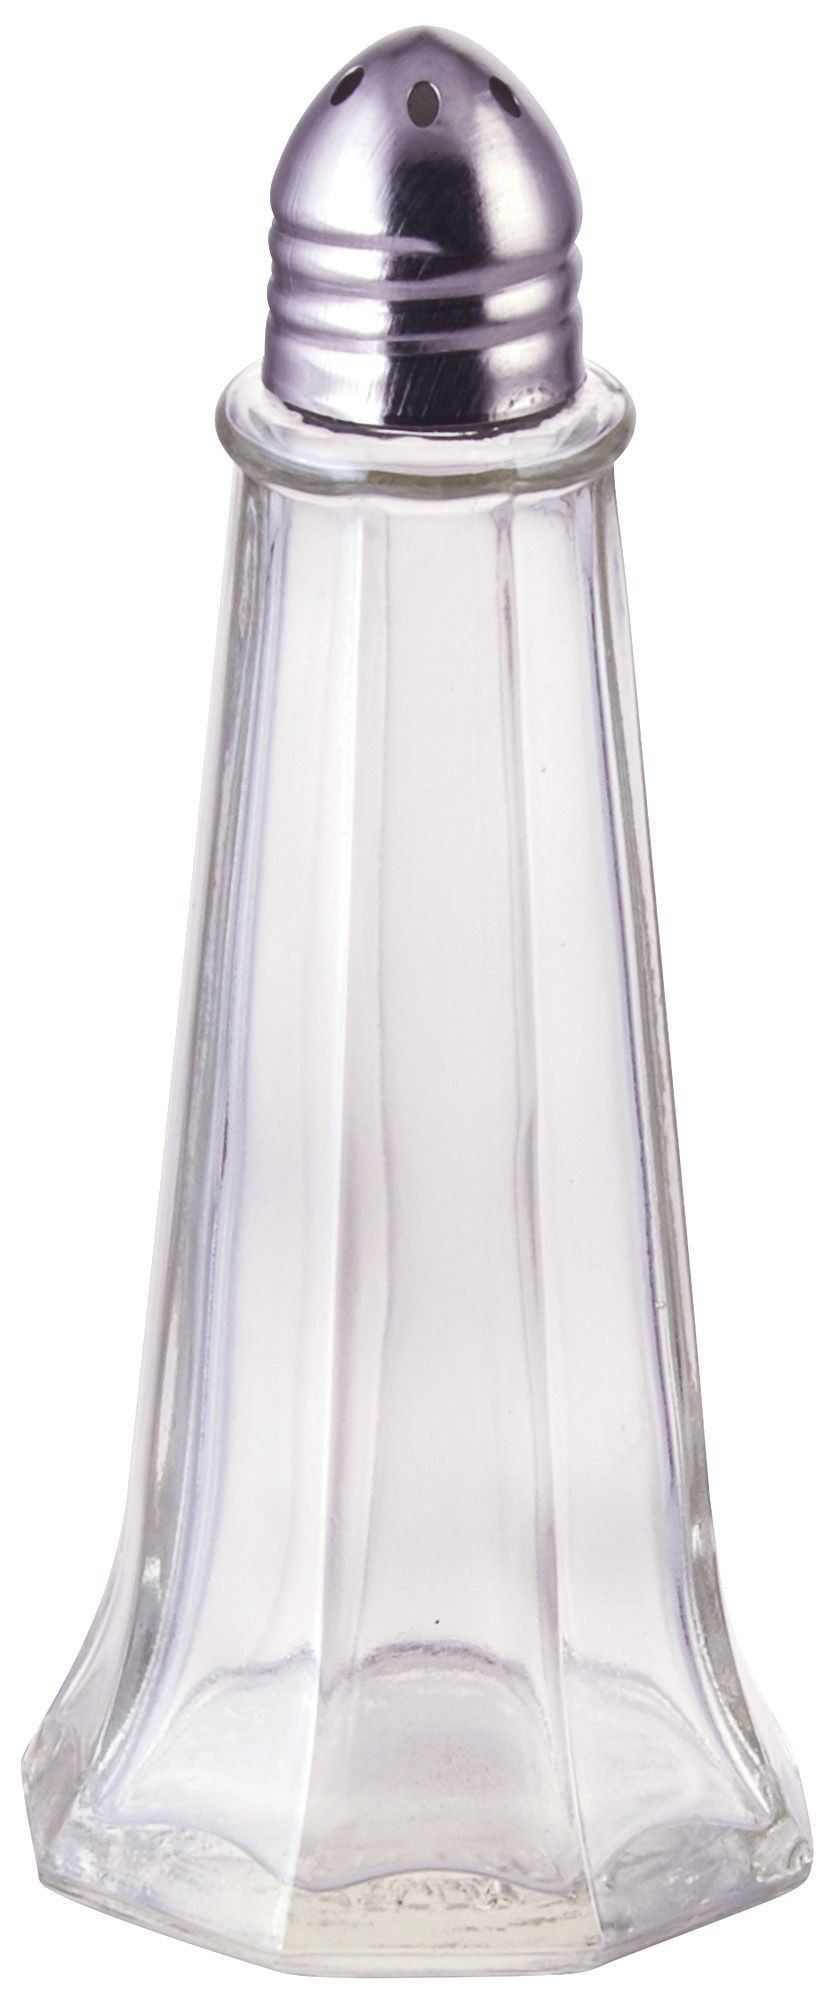 Winco G-310 Tower Shaker 1 oz. with Chrome Top,